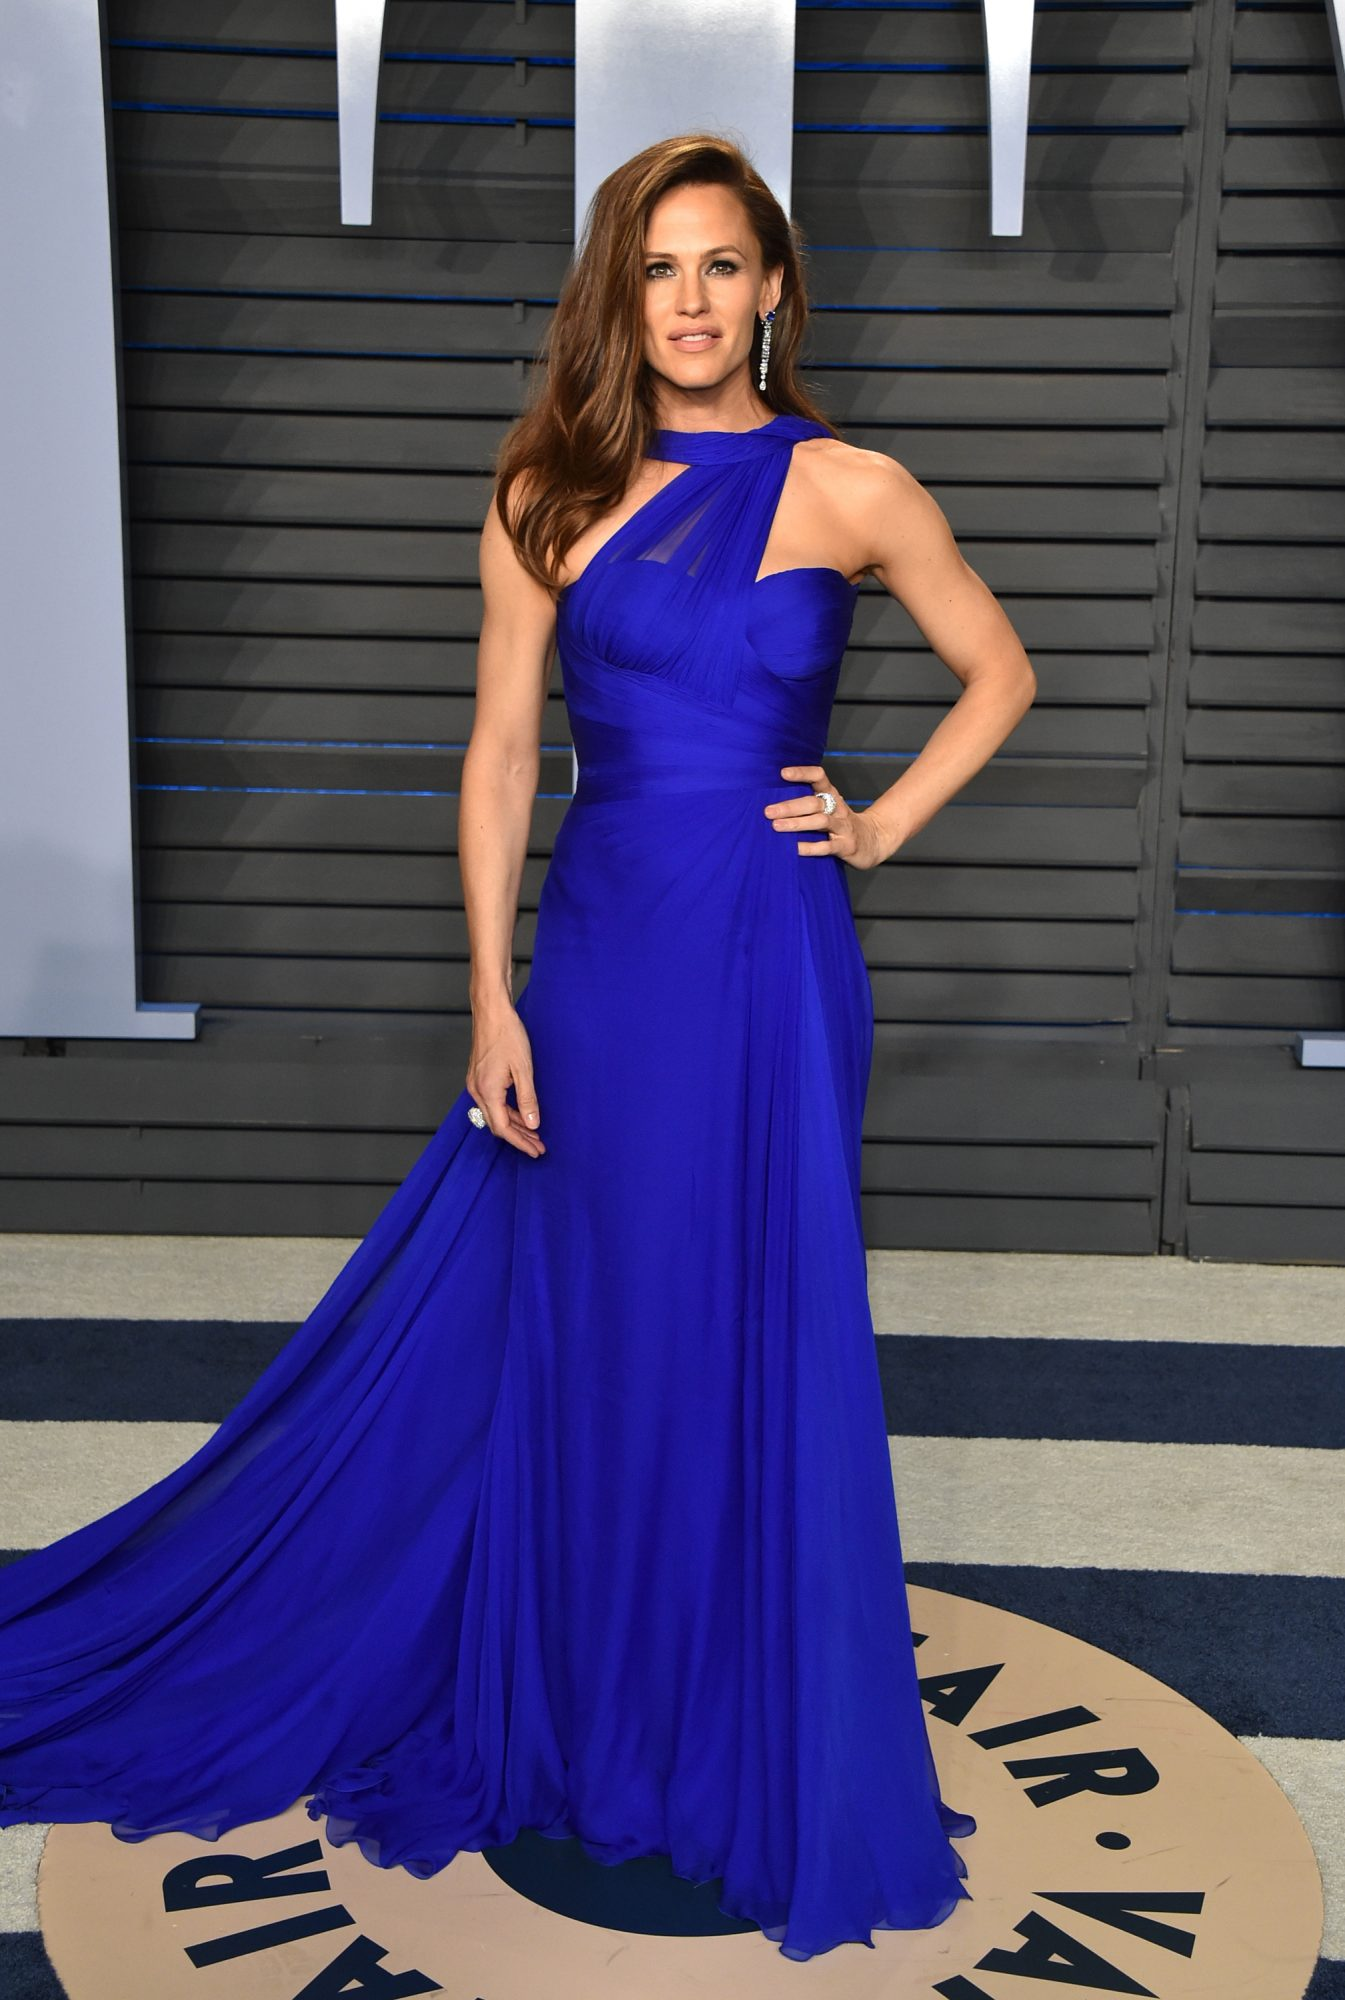 Jennifer Garner Jokingly Reveals What She Was Thinking About at That Viral Oscars Moment